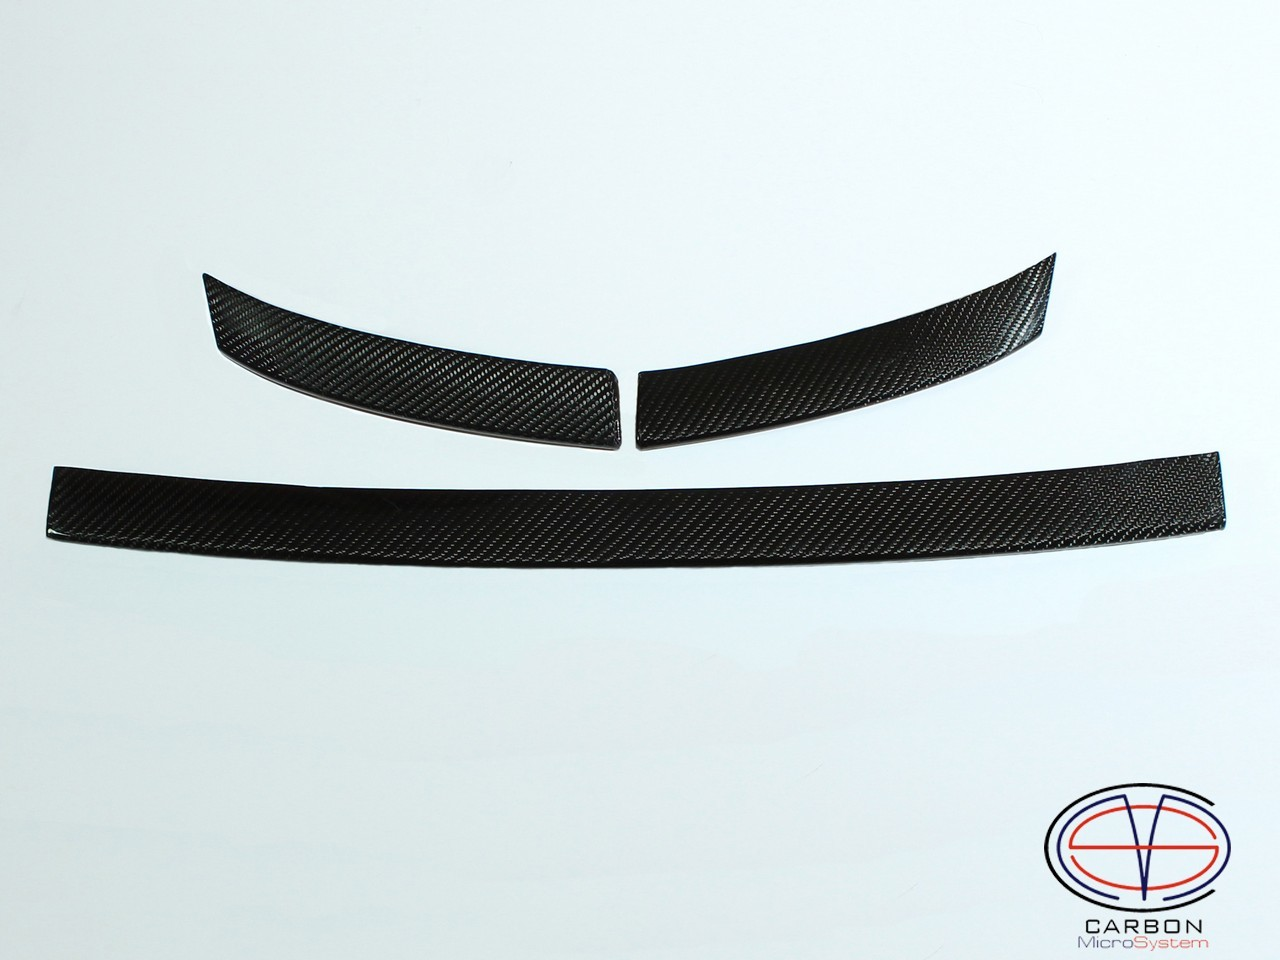 2 headlights trim and hood trim from Carbon Fiber for TOYOTA Celica  ST 182, ST 183, ST 185 GT4 2016-10